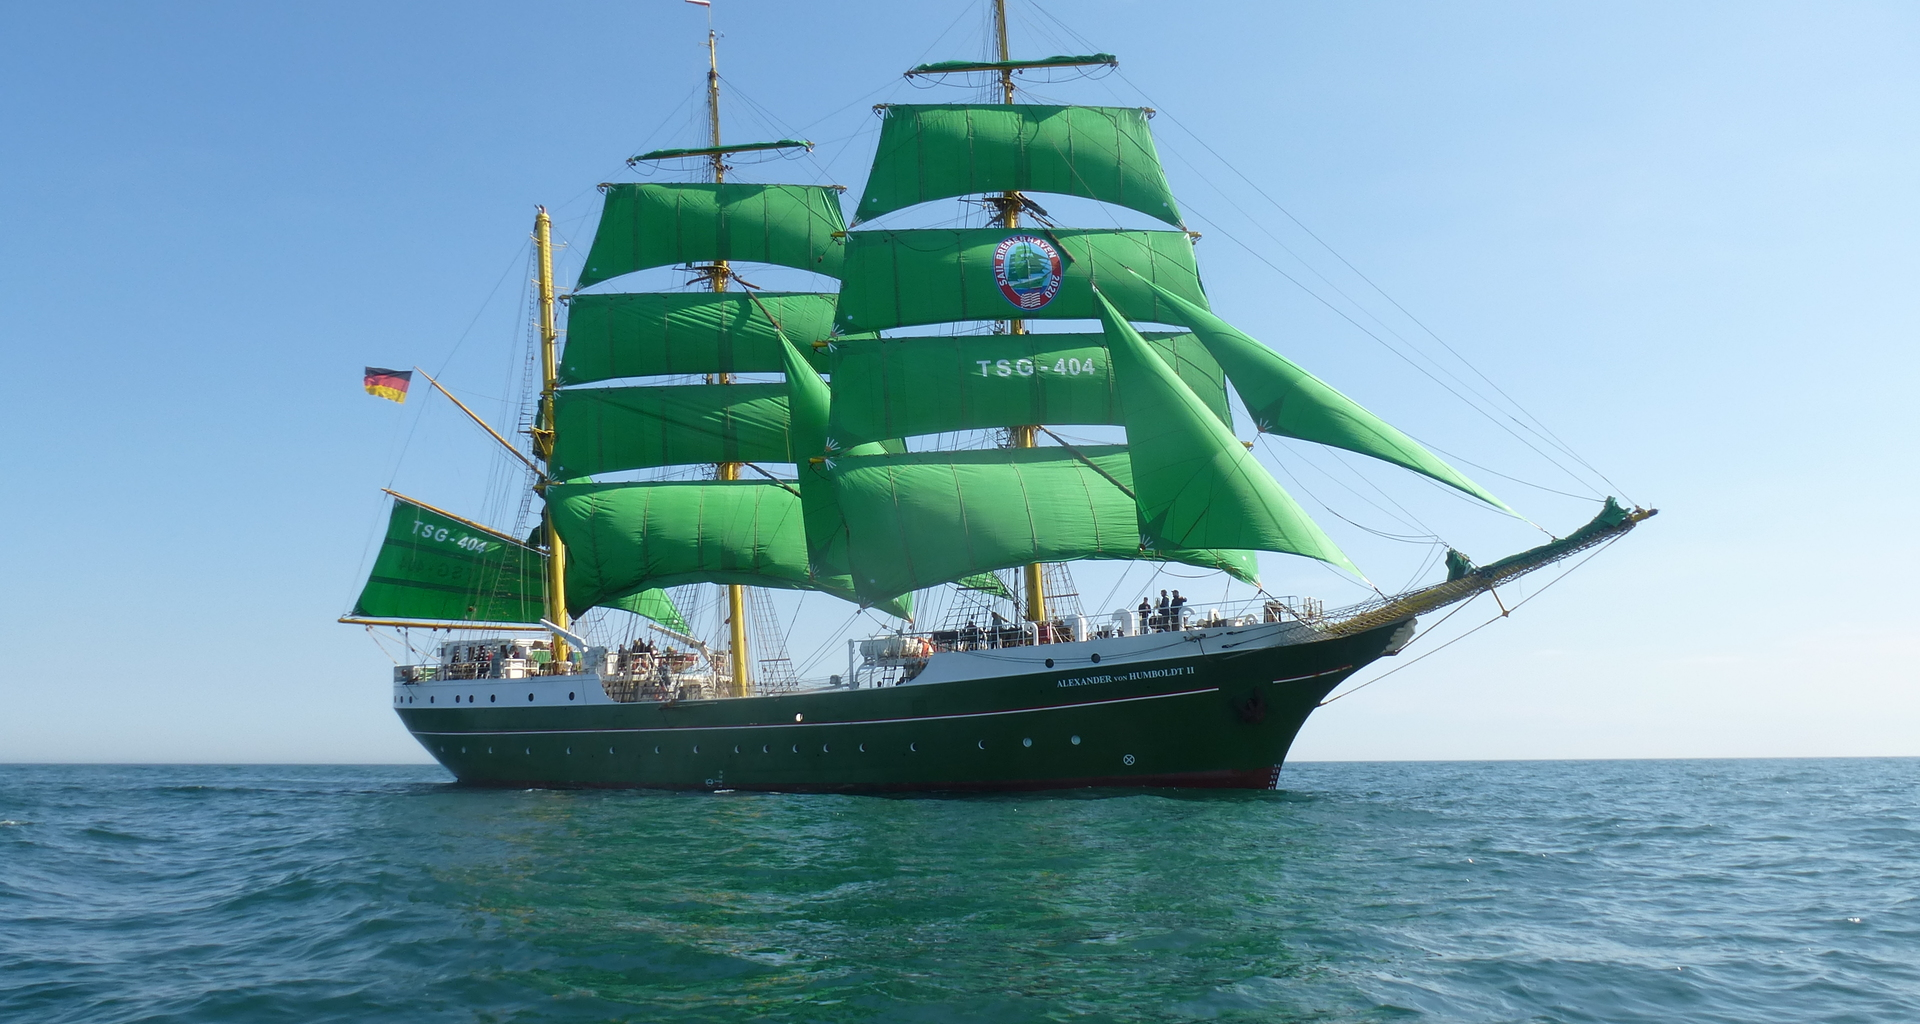 A sailing ship with green sails